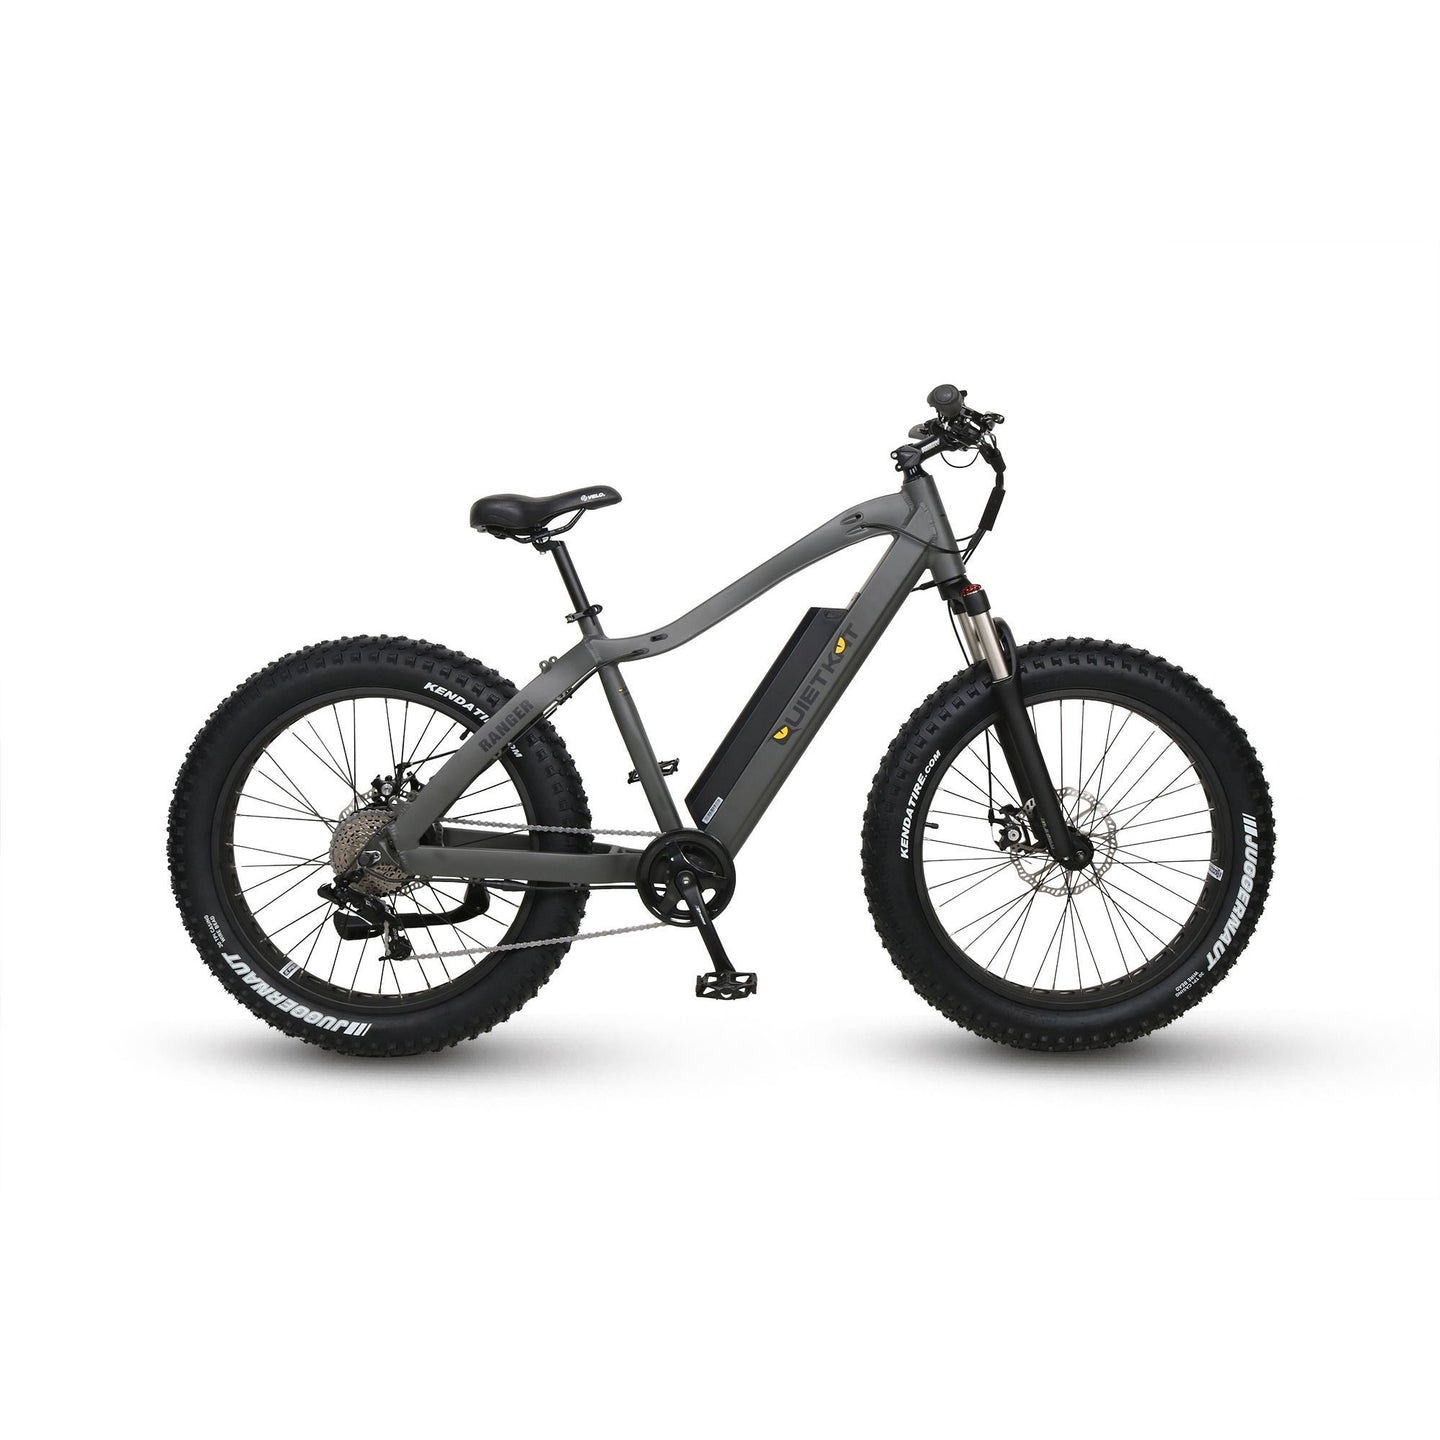 Ranger - Electric Bikes